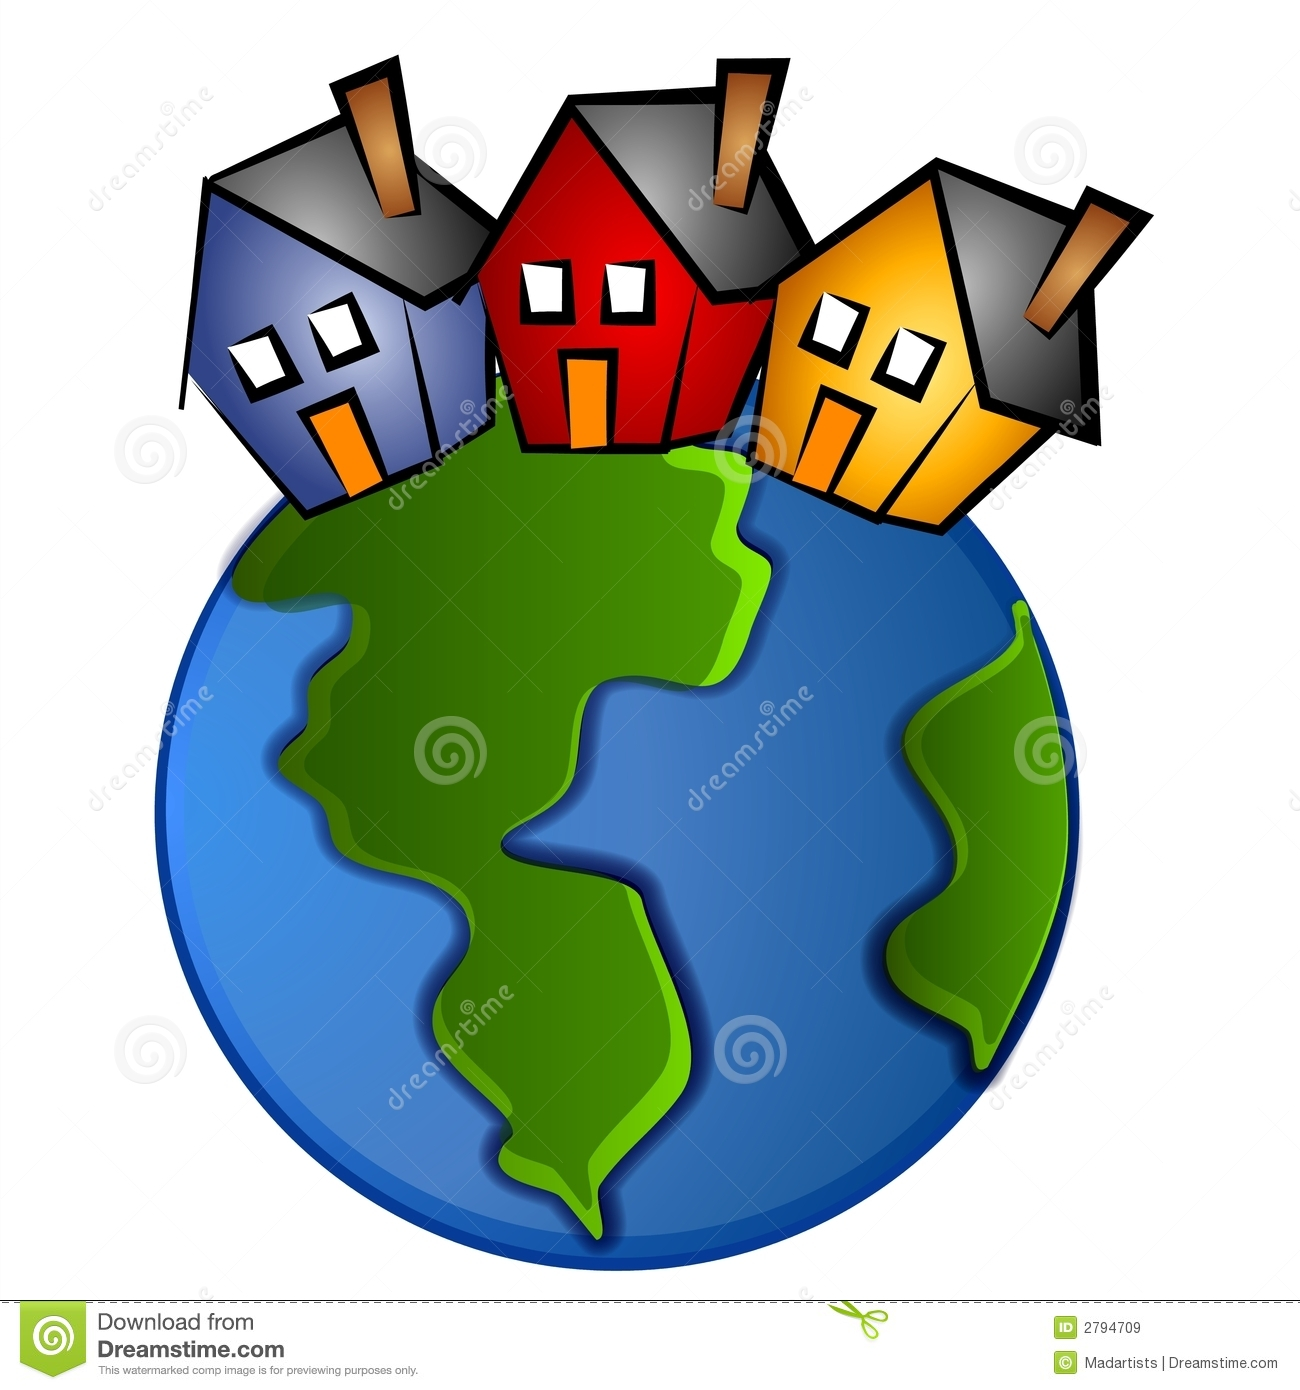 Clip Art Illustration Of The Earth With 3 Houses On Top